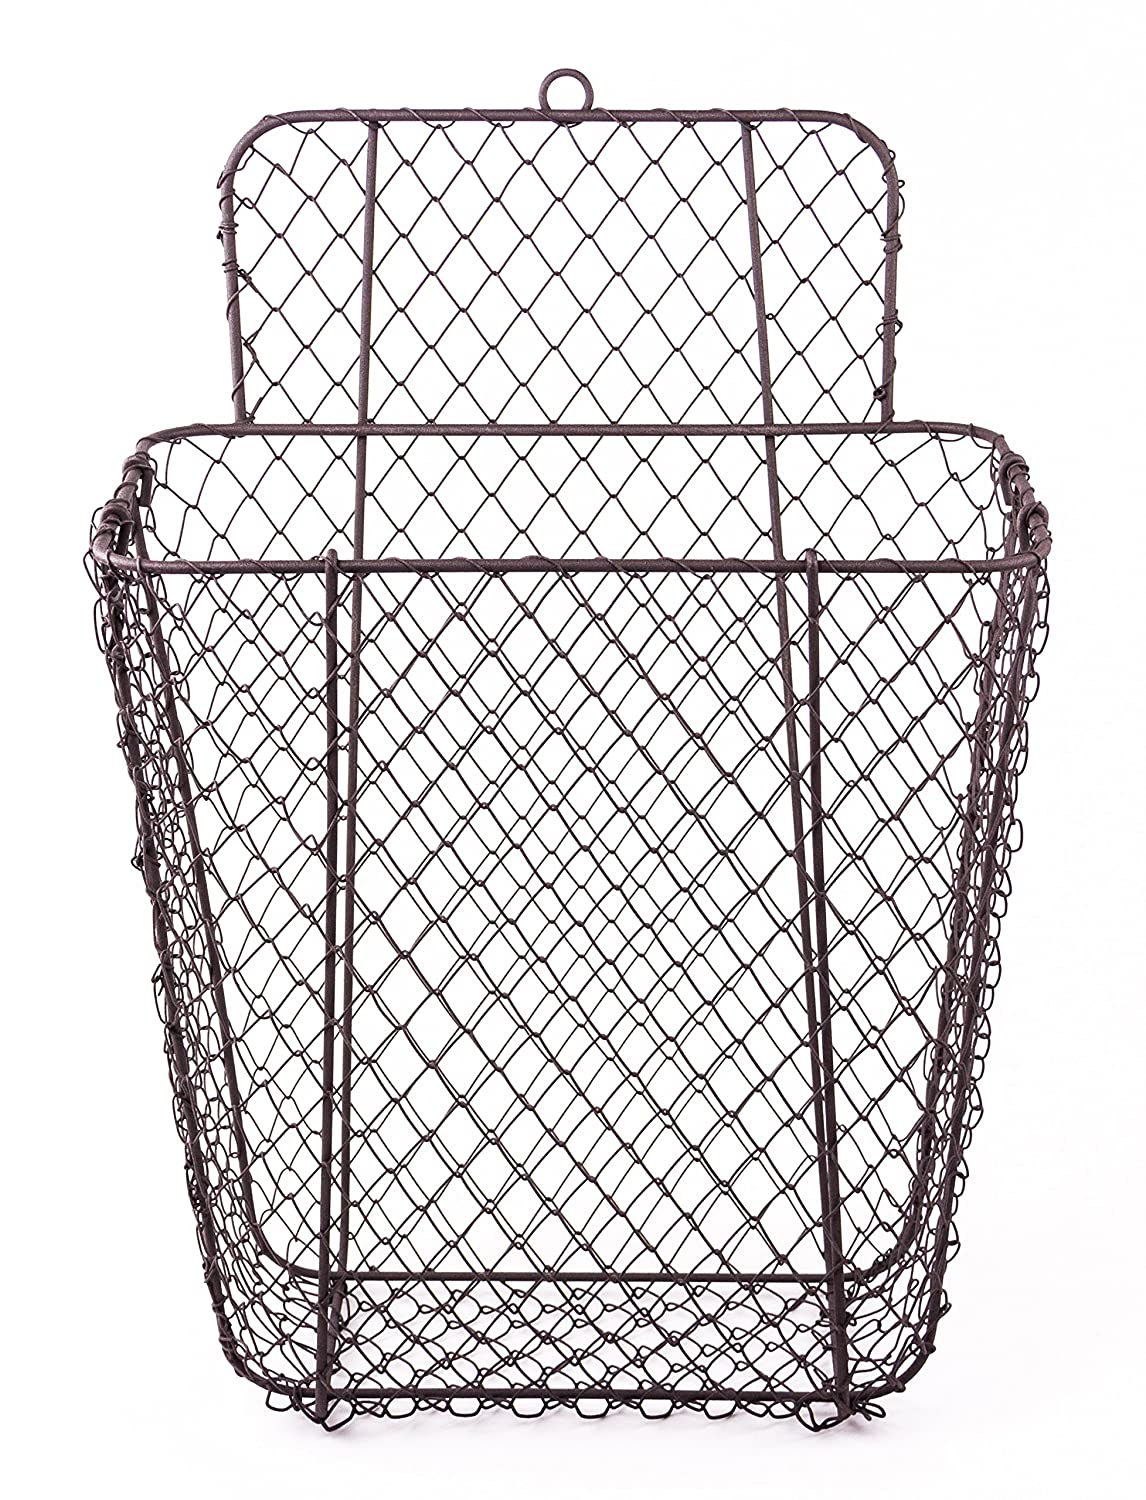 Rustic Hanging Wall Pocket Wire Mail/Storage Basket: Amazon.com ...